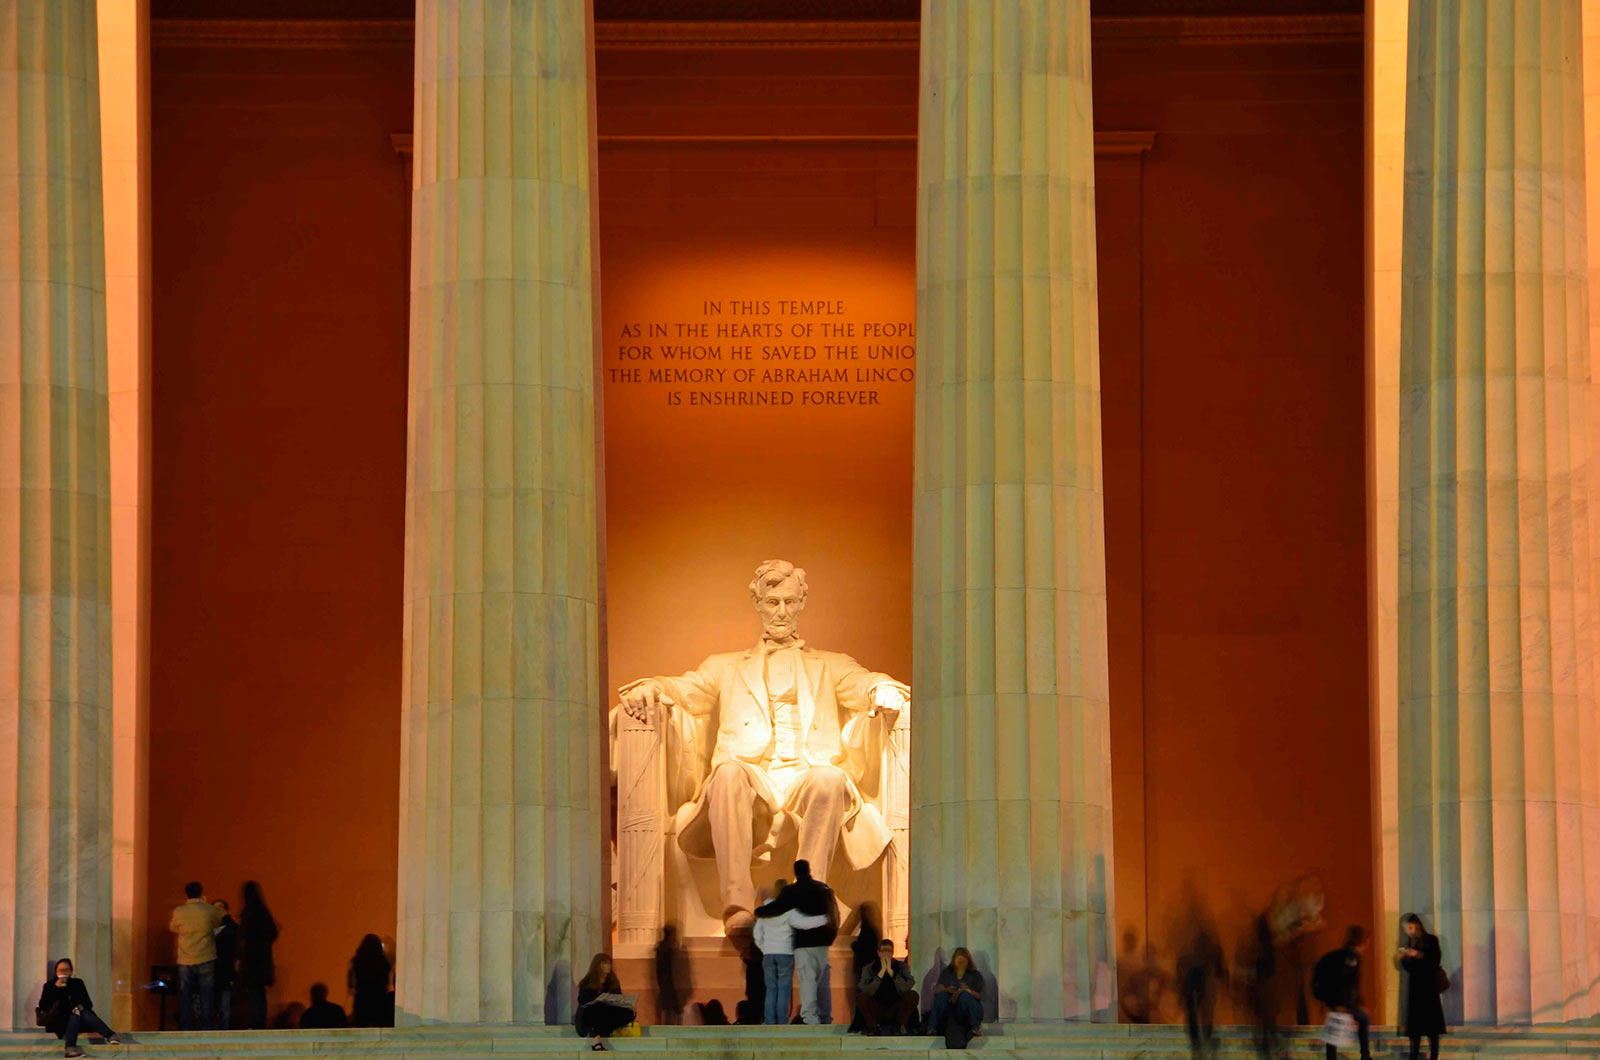 Visiting The Lincoln Memorial Washington Org